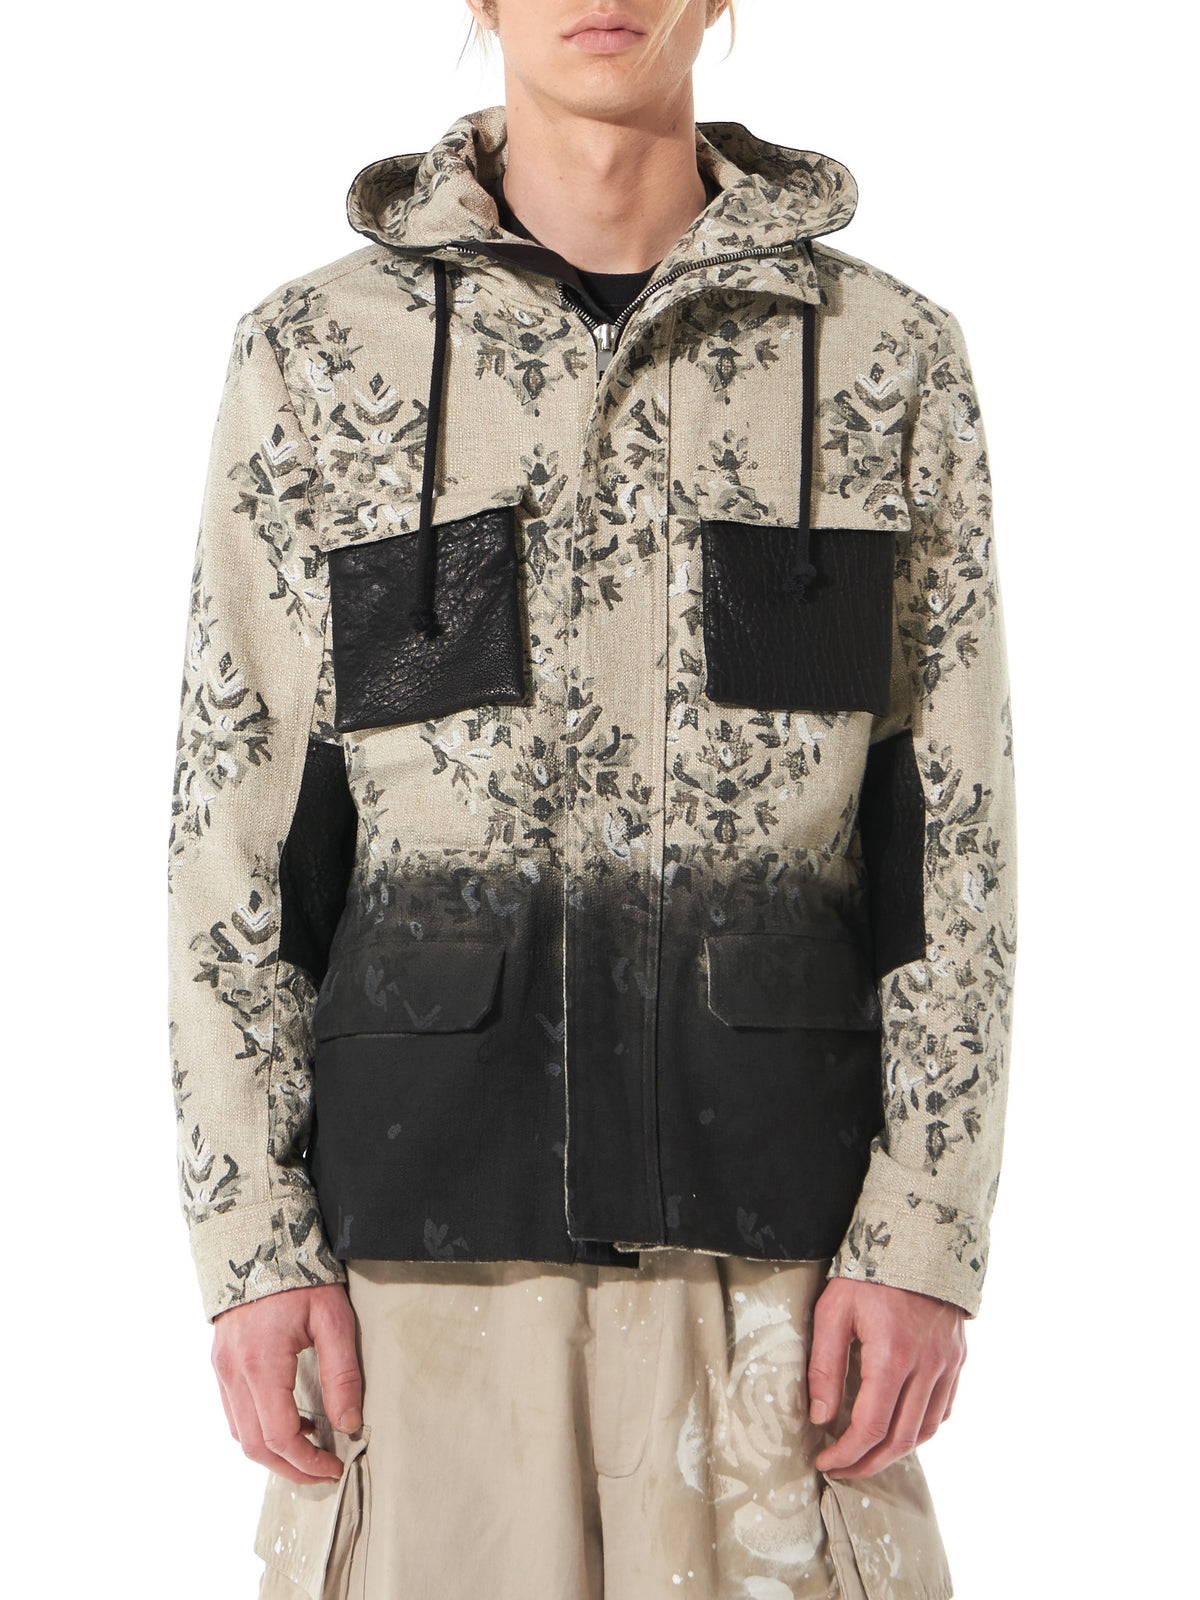 Floral-Print Hooded Jacket (MA172066 NATURAL) - H. Lorenzo